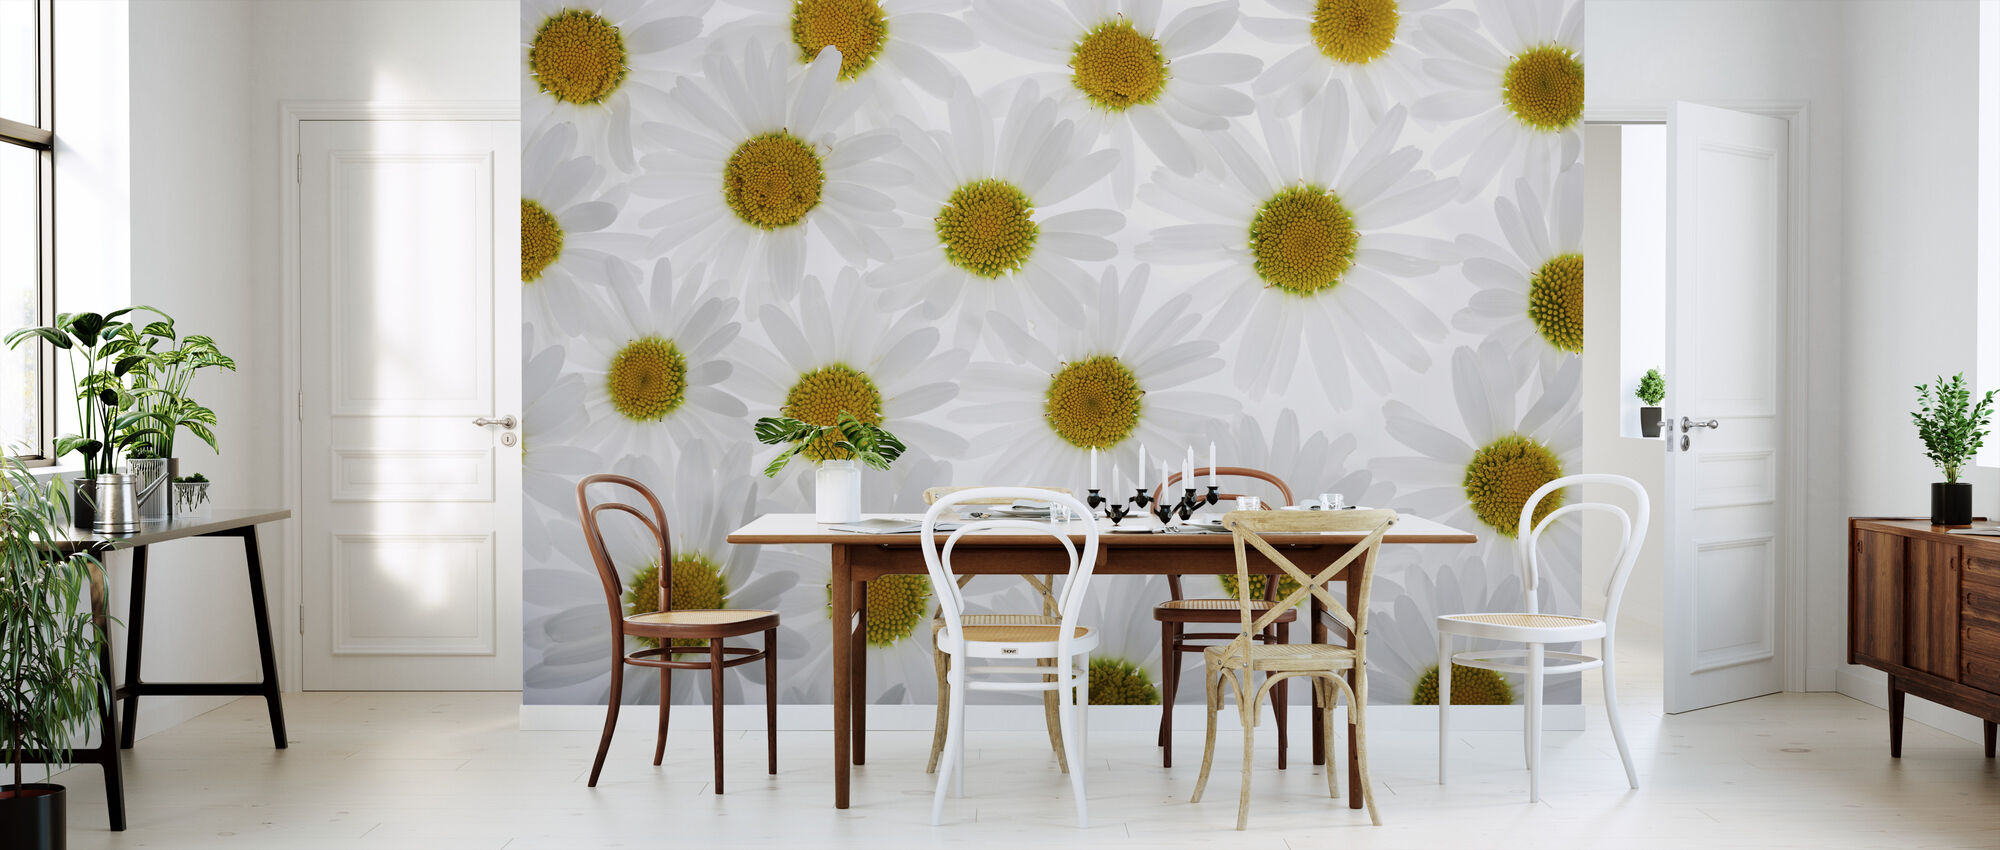 Floor of White Flowers - Wallpaper - Kitchen